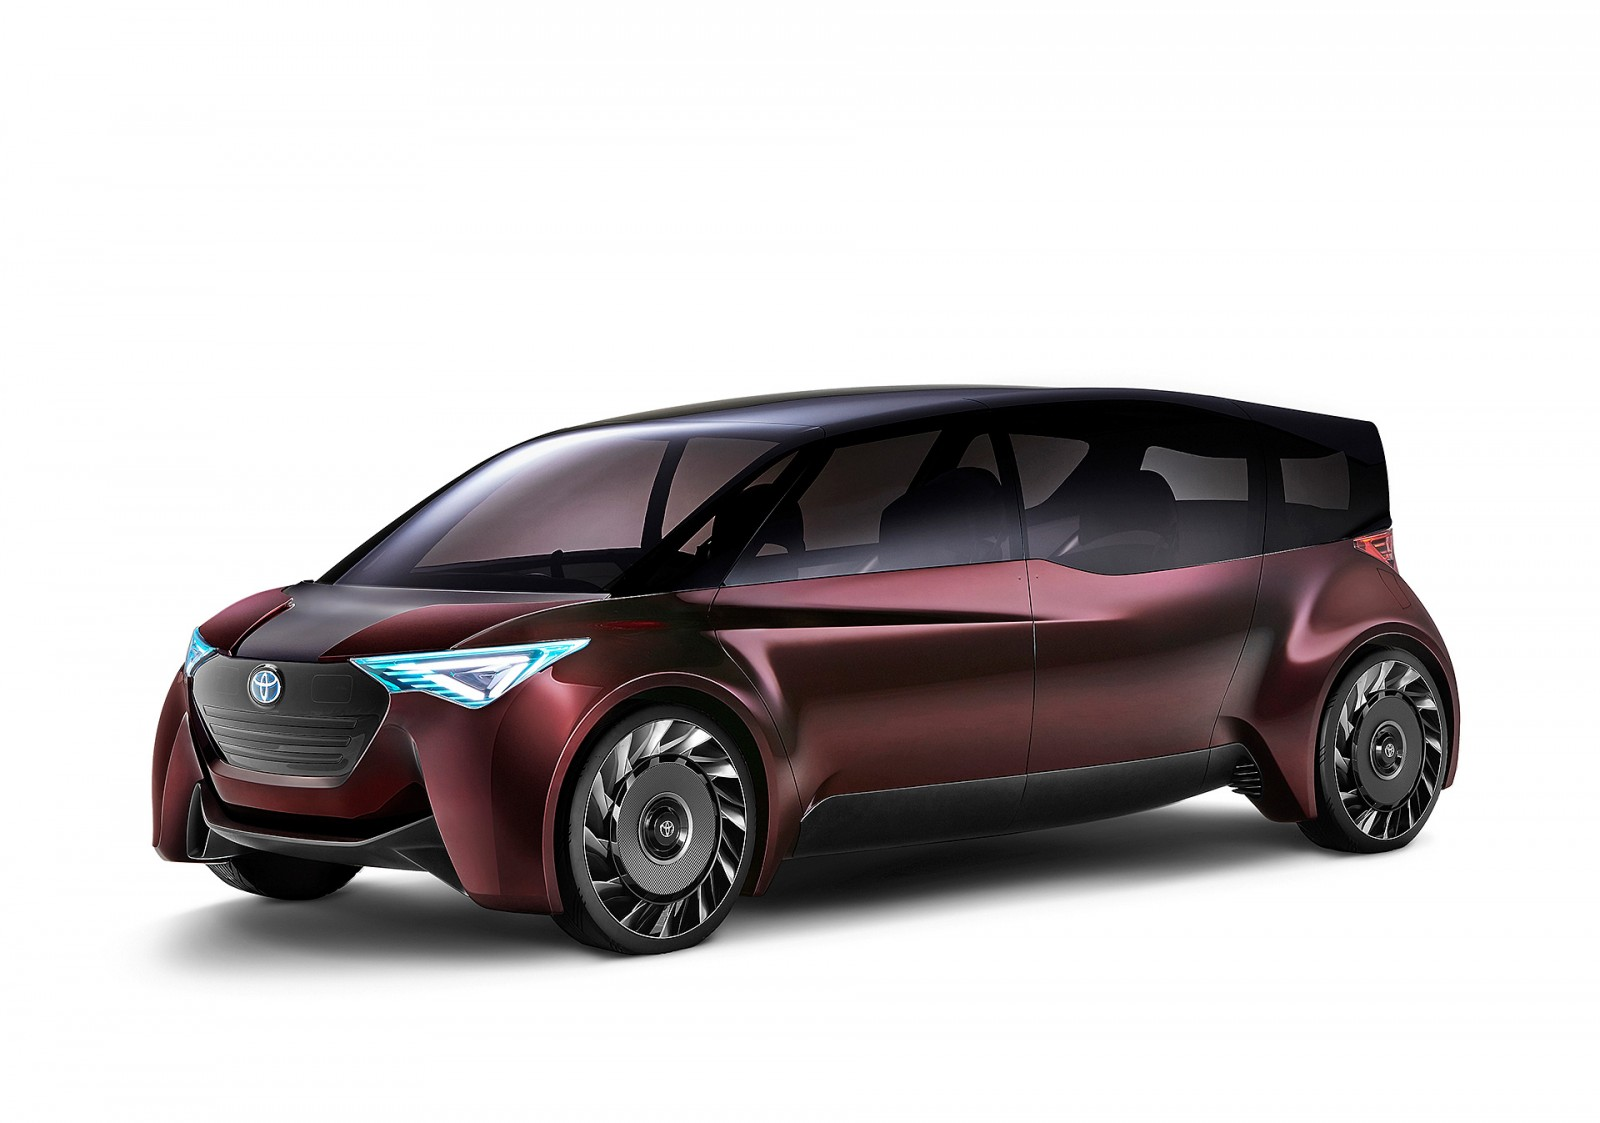 Toyota Fine-Comfort Ride concept vehicle